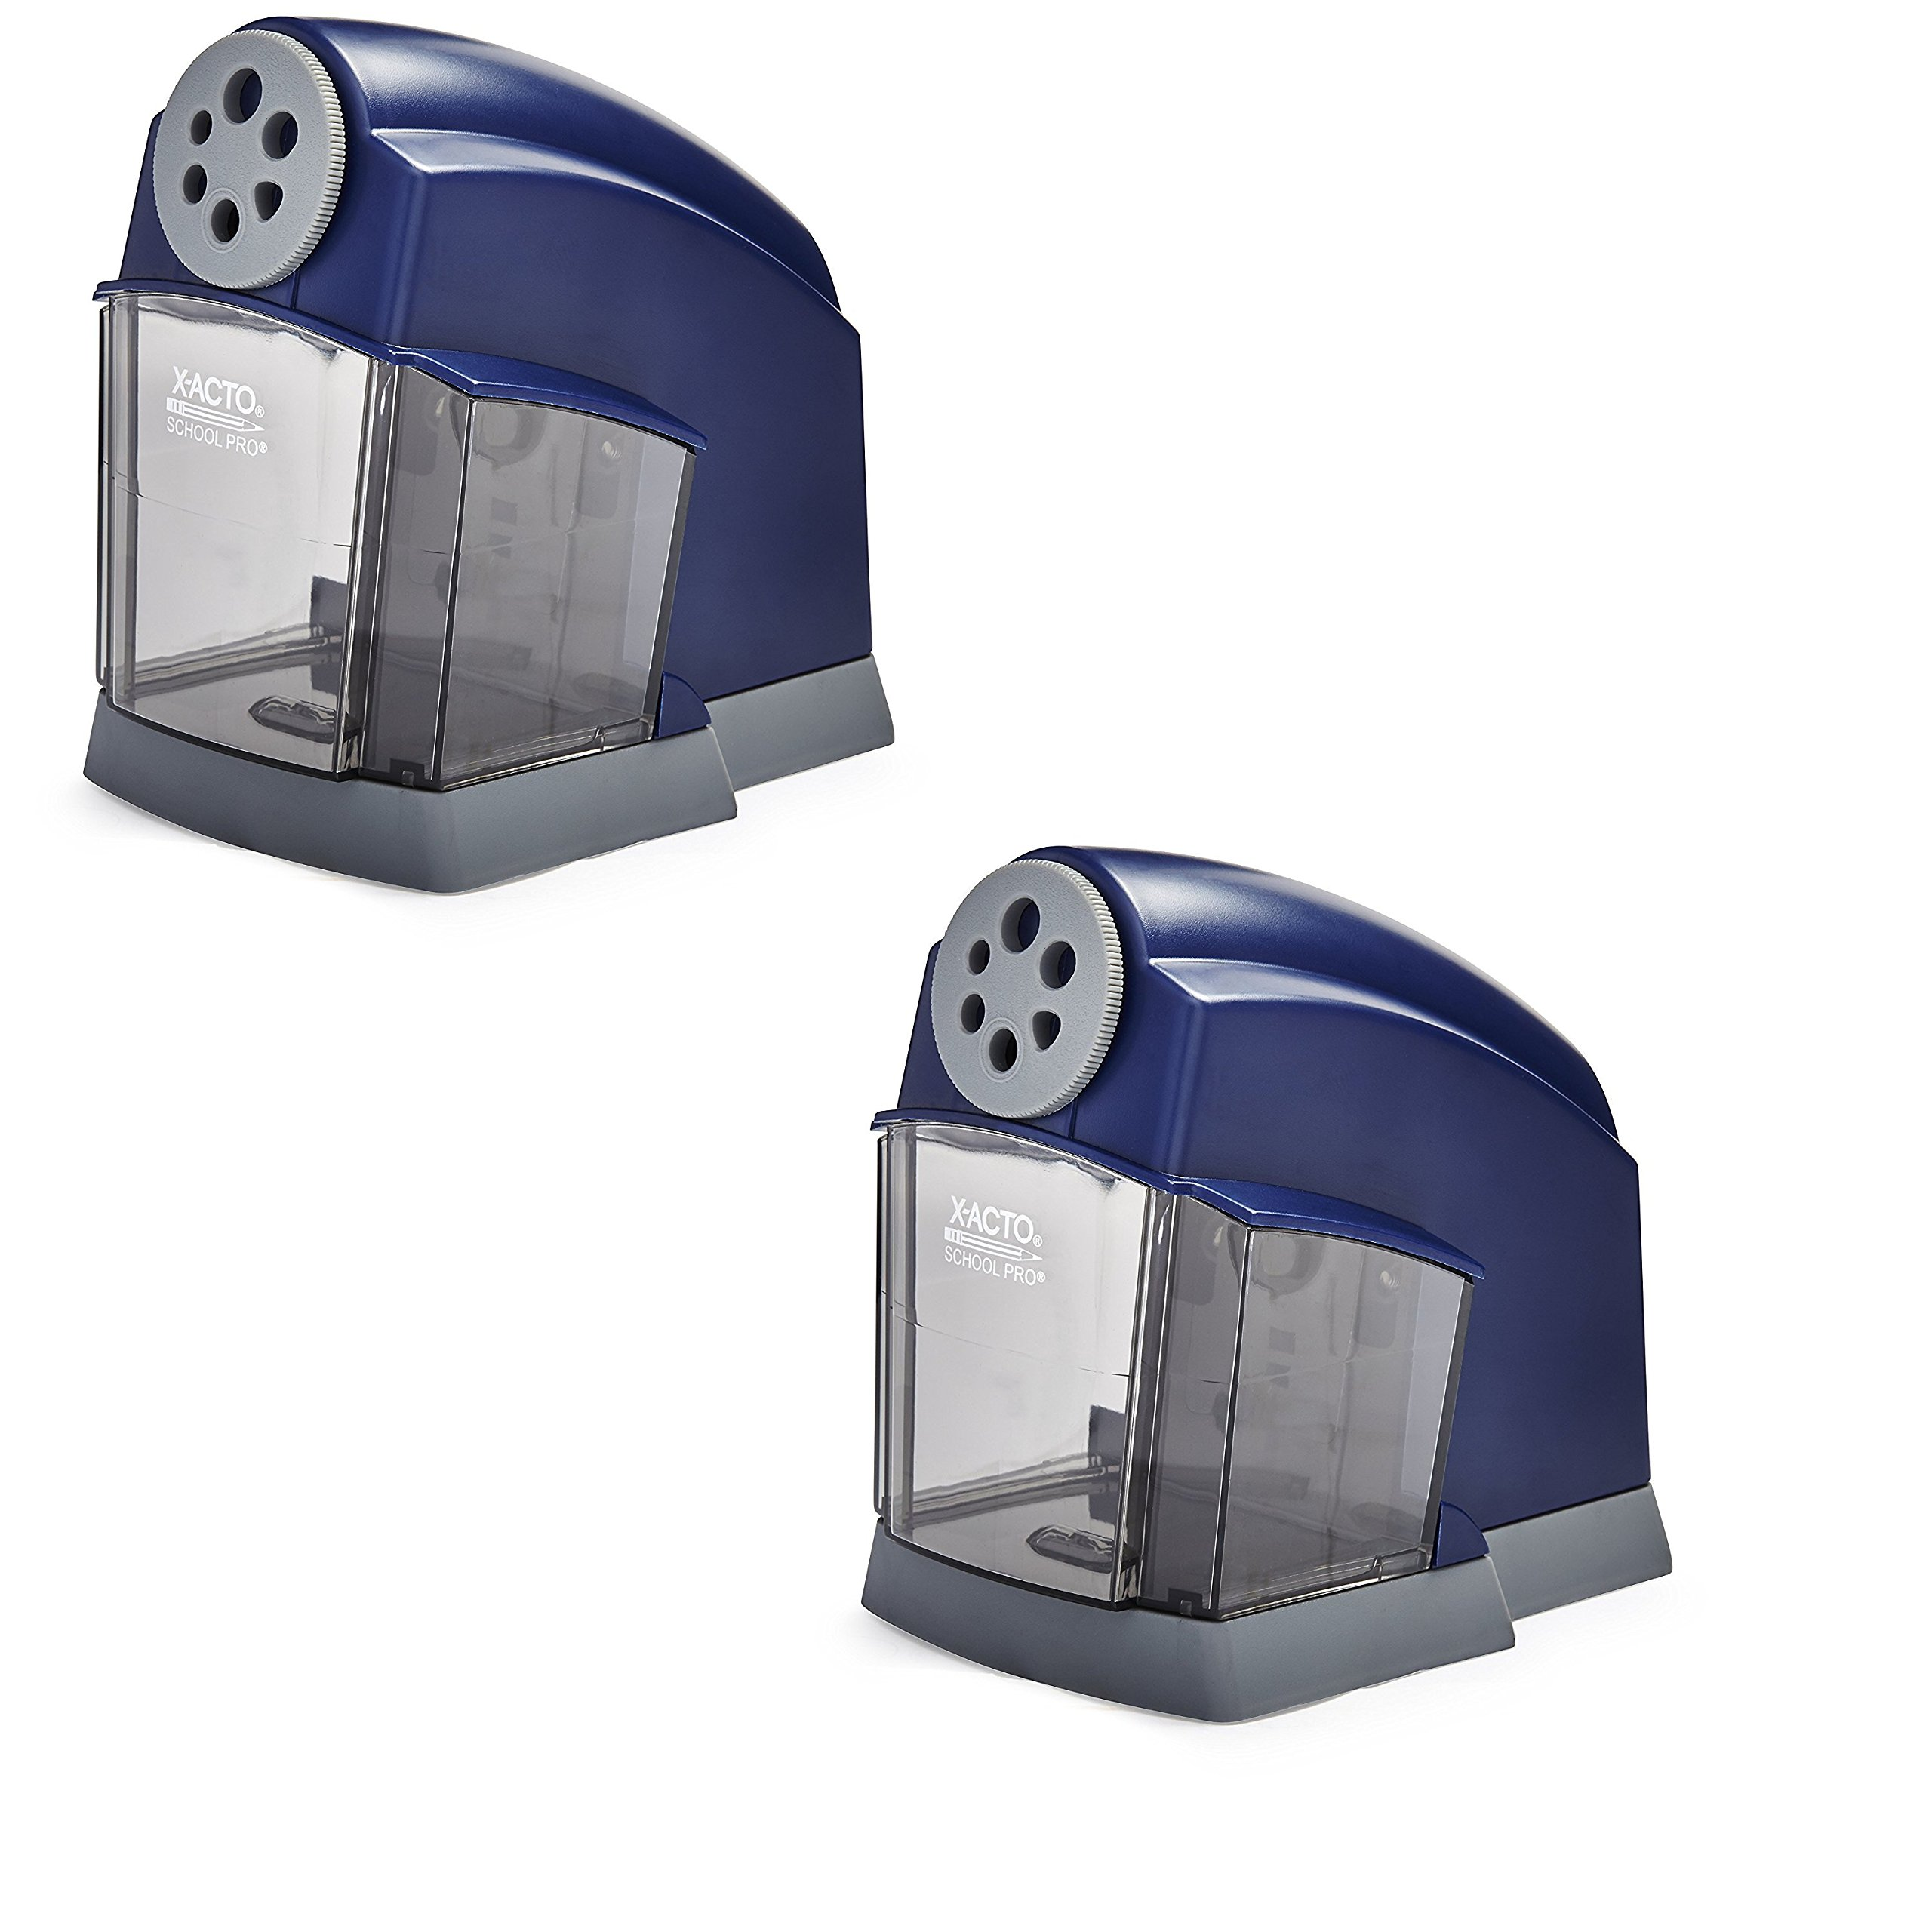 X-ACTO SchoolPro Classroom Electric Pencil Sharpener, Heavy Duty, Blue/Grey (2 Pack)